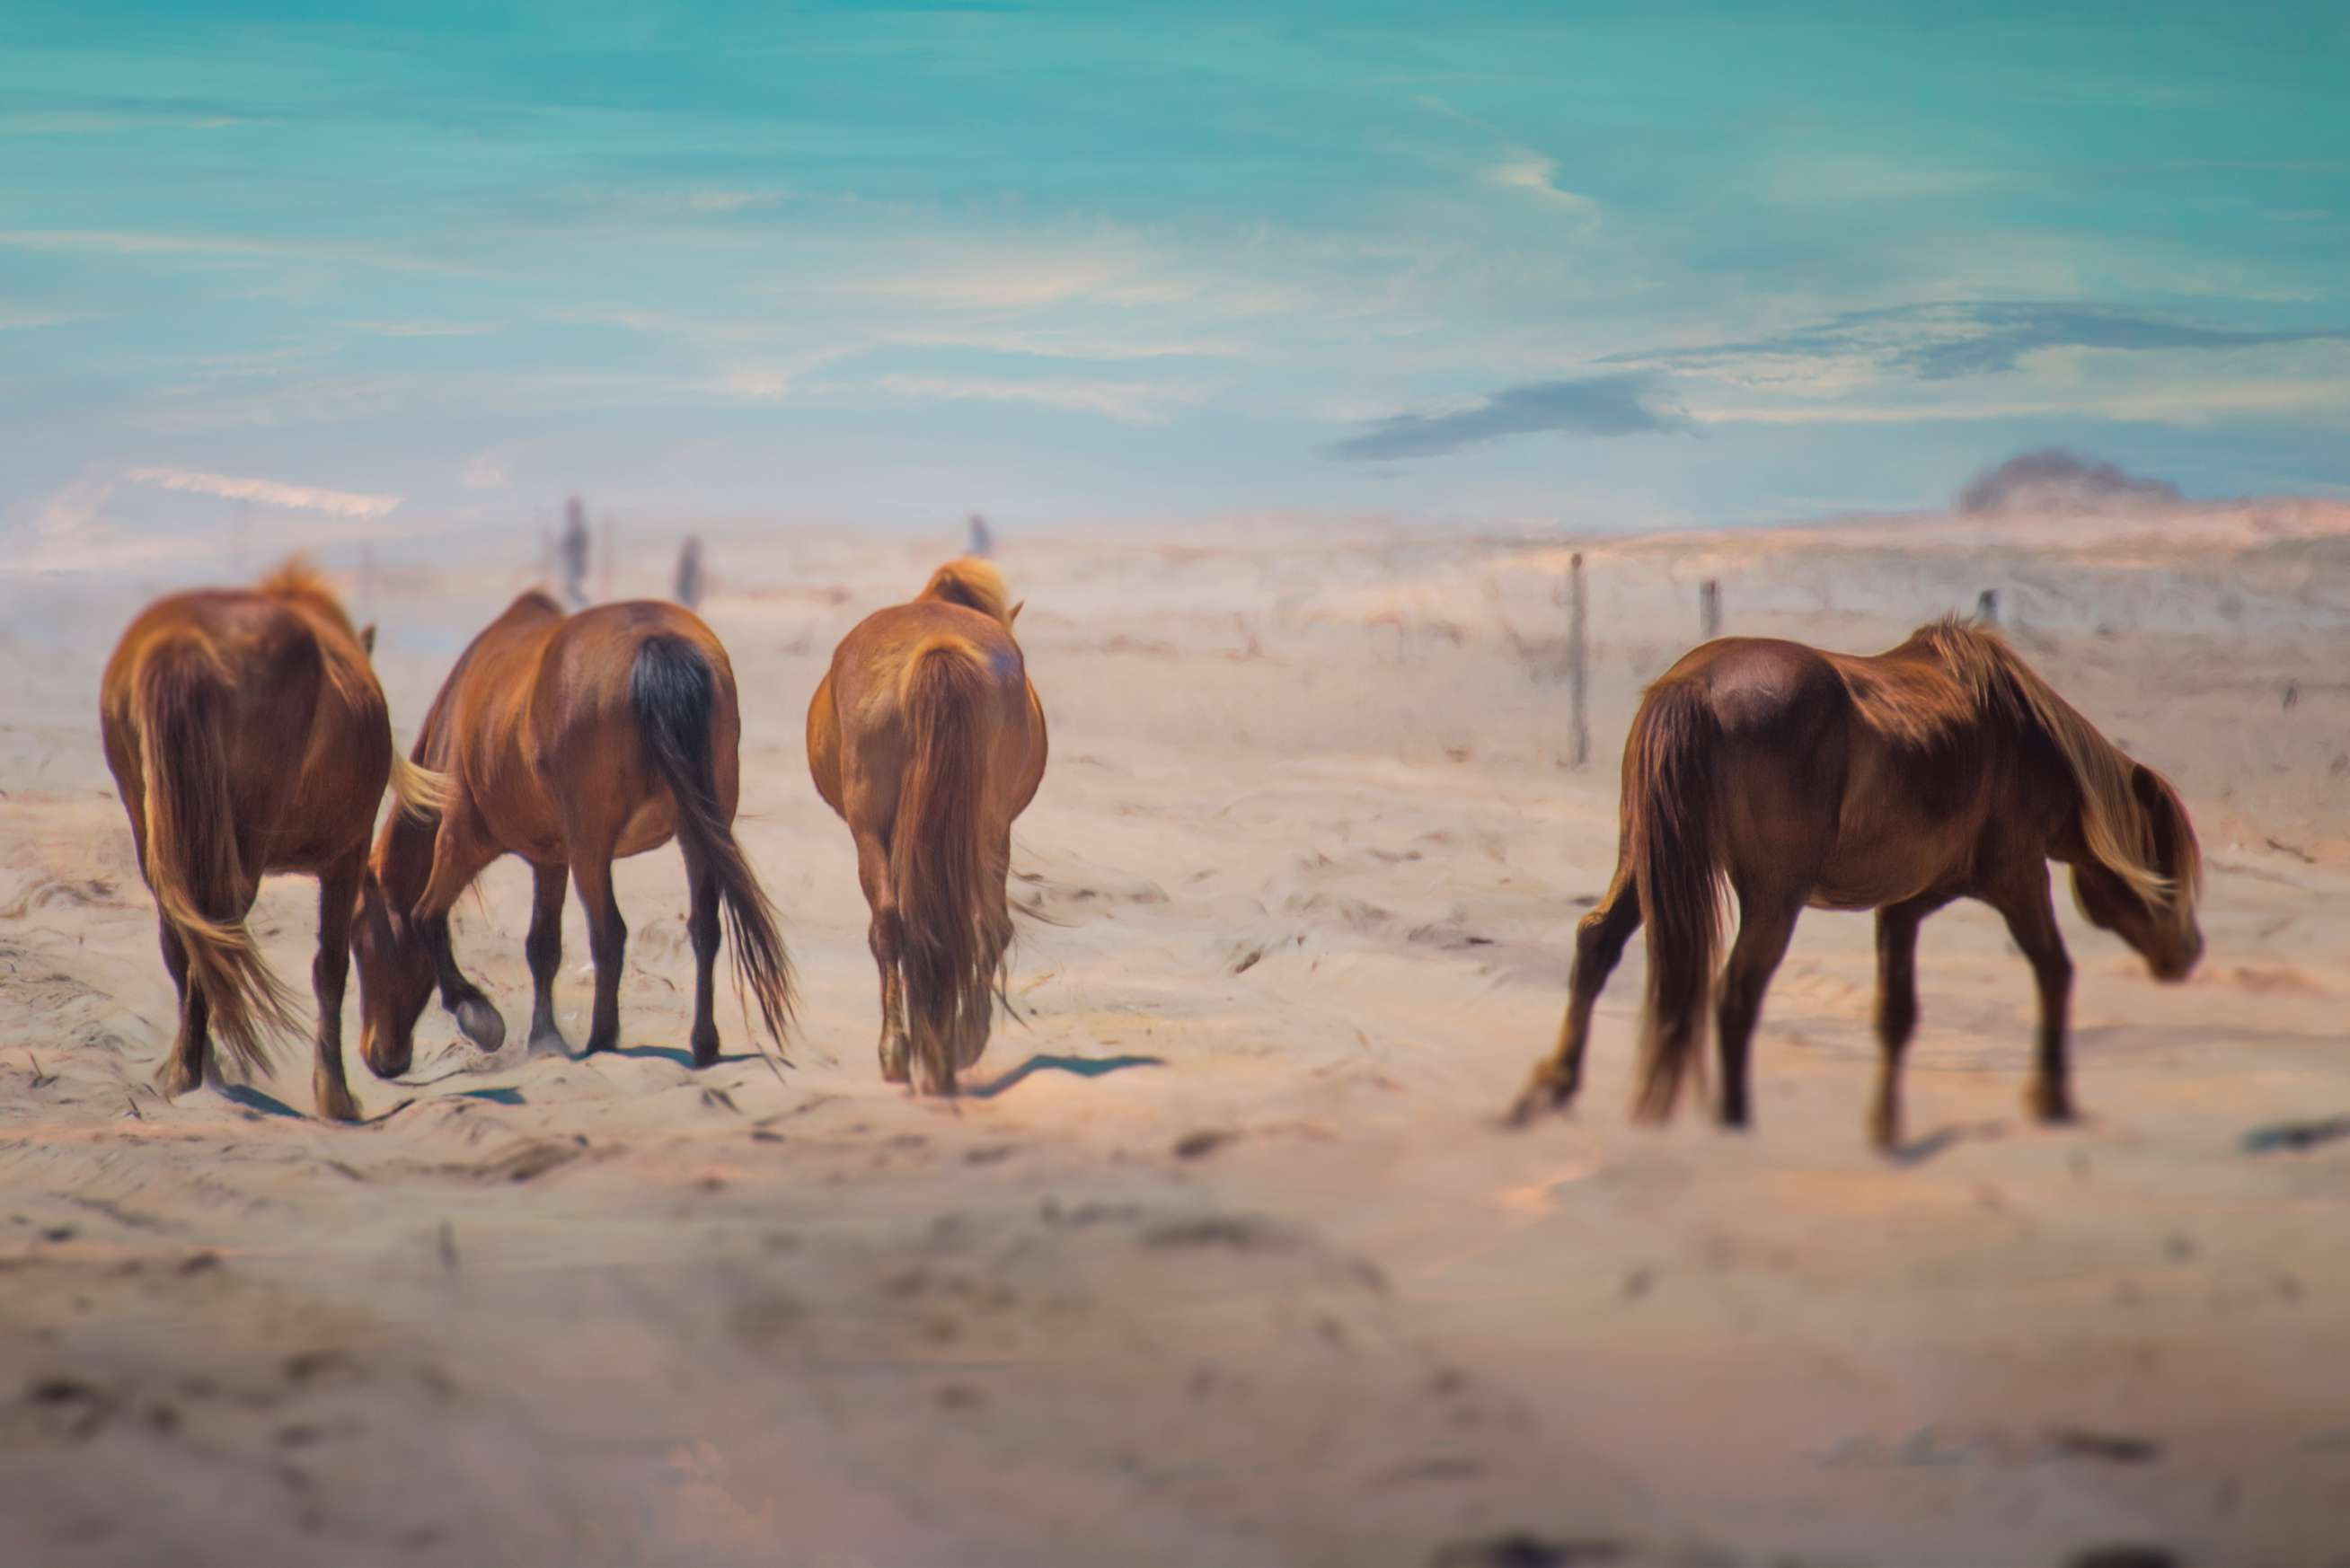 A band of wild ponies grazing in the sand at the Assateague Island National Seashore in Maryland.